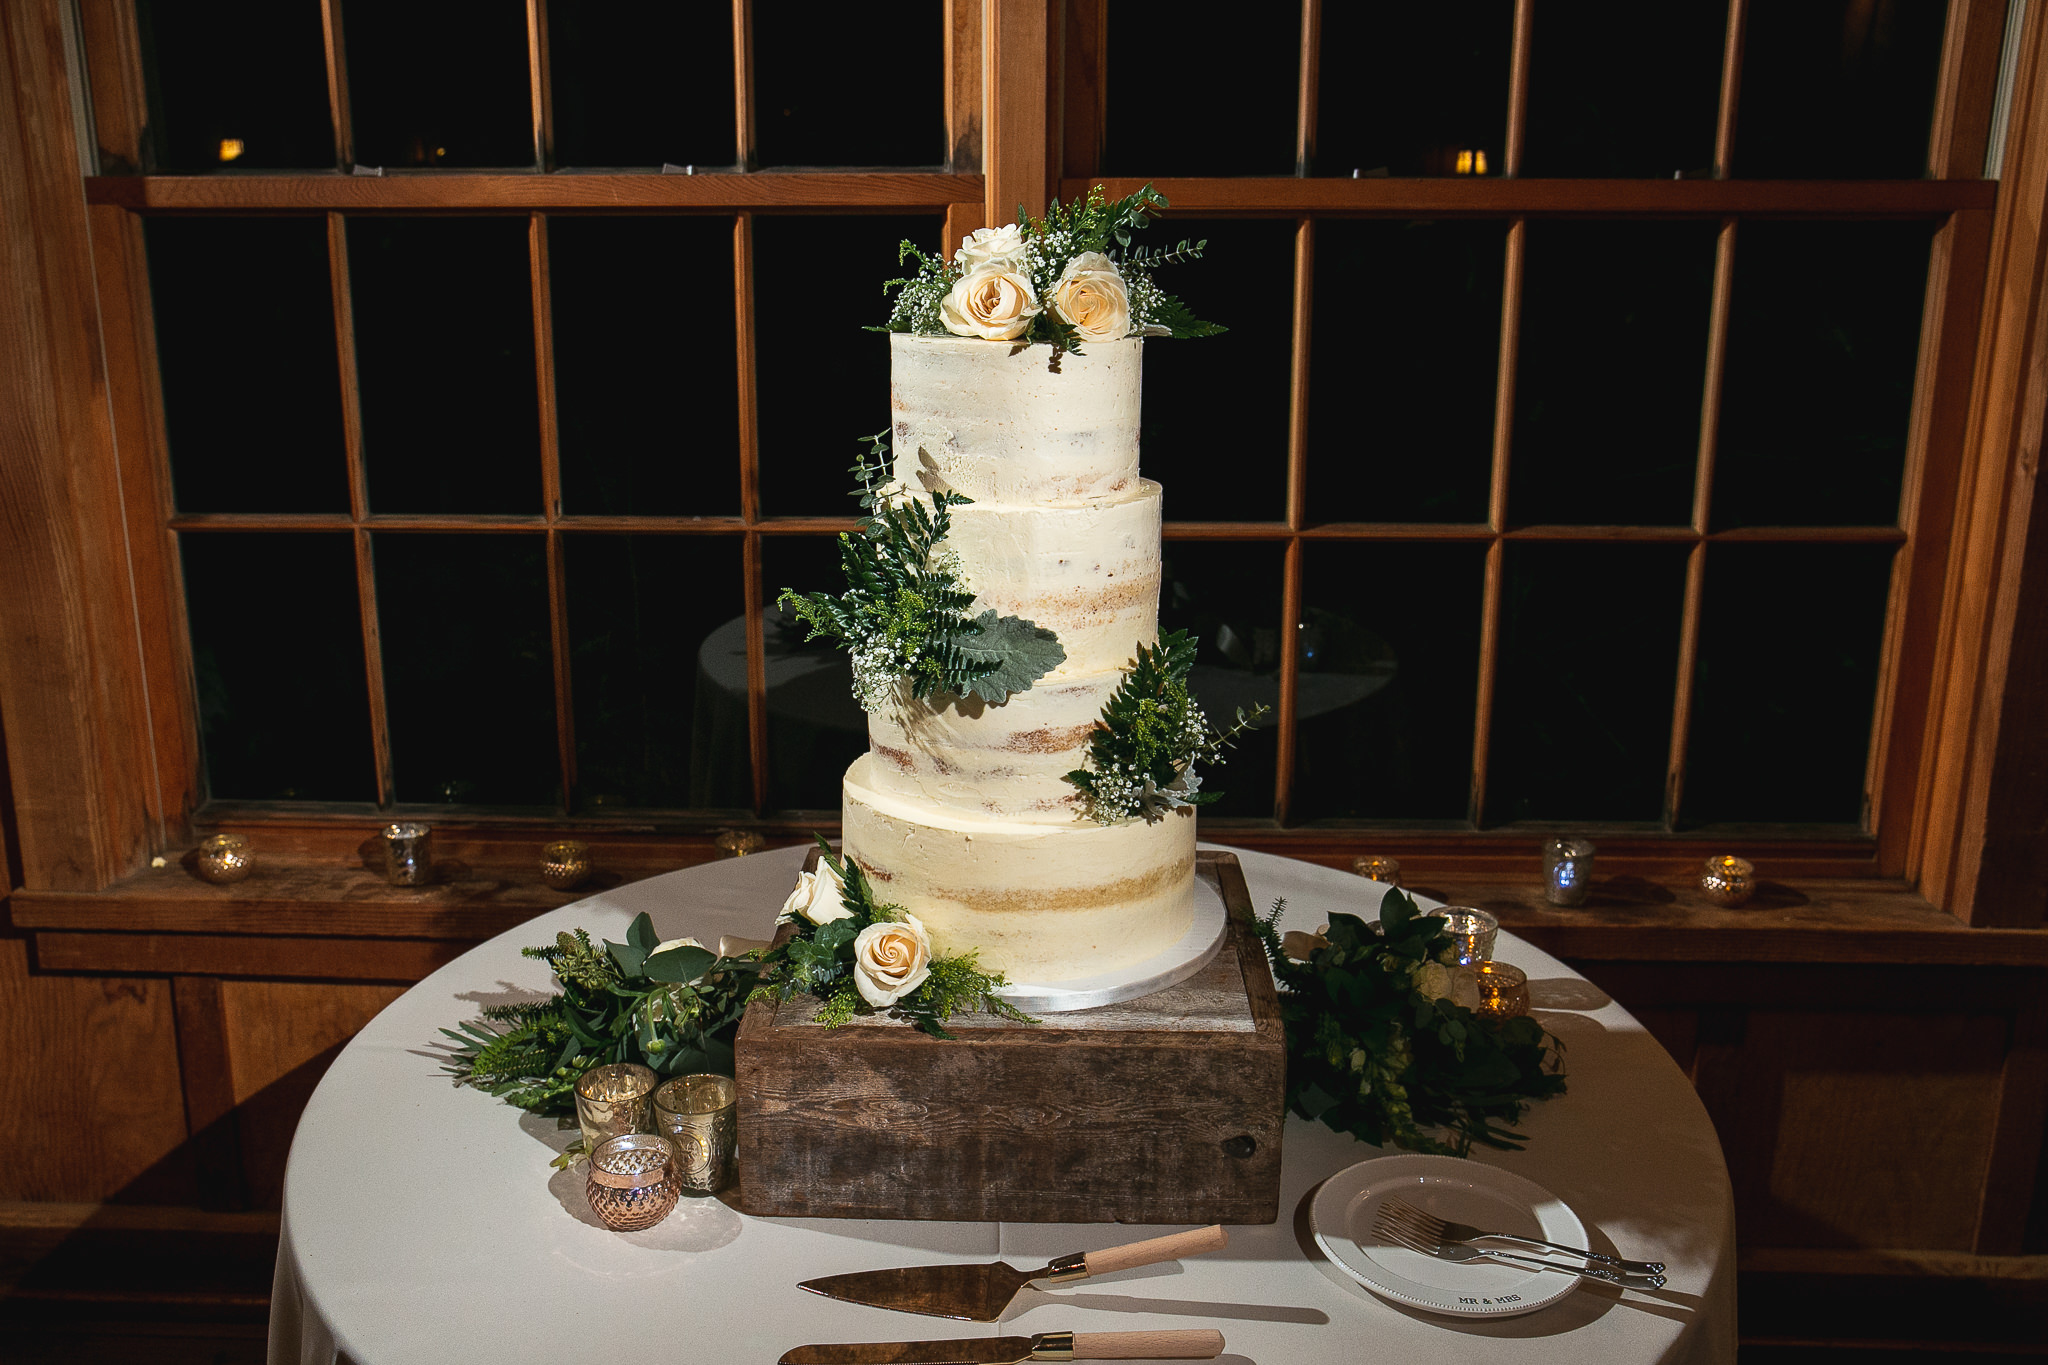 This amazing multi-tiered wedding cake was created by Etta Avenue Cakes